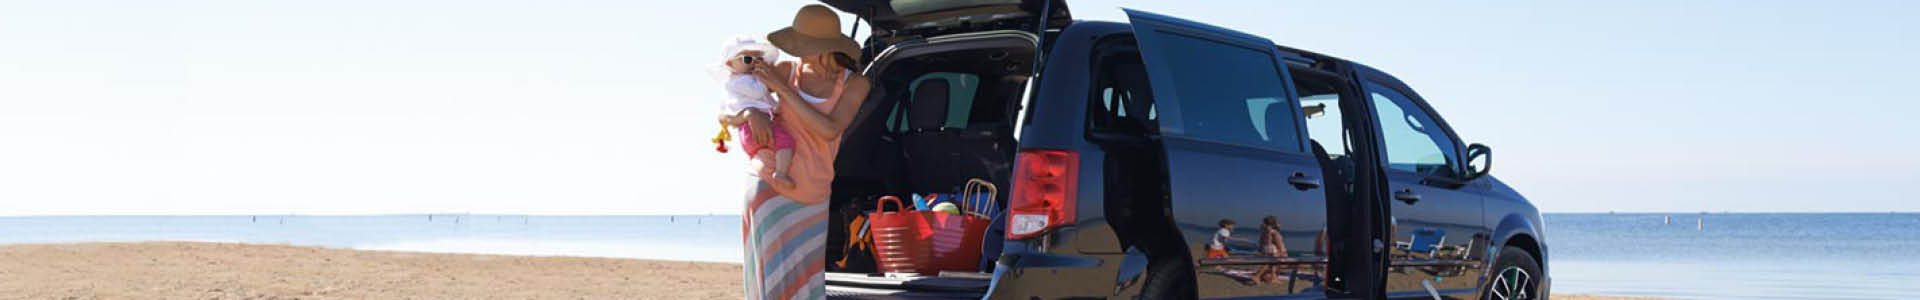 A banner with a woman standing in front of a black Dodge Grand Caravan at the beach, holding a baby wearing sunglasses. The back and side doors of the Grand Caravan are open.